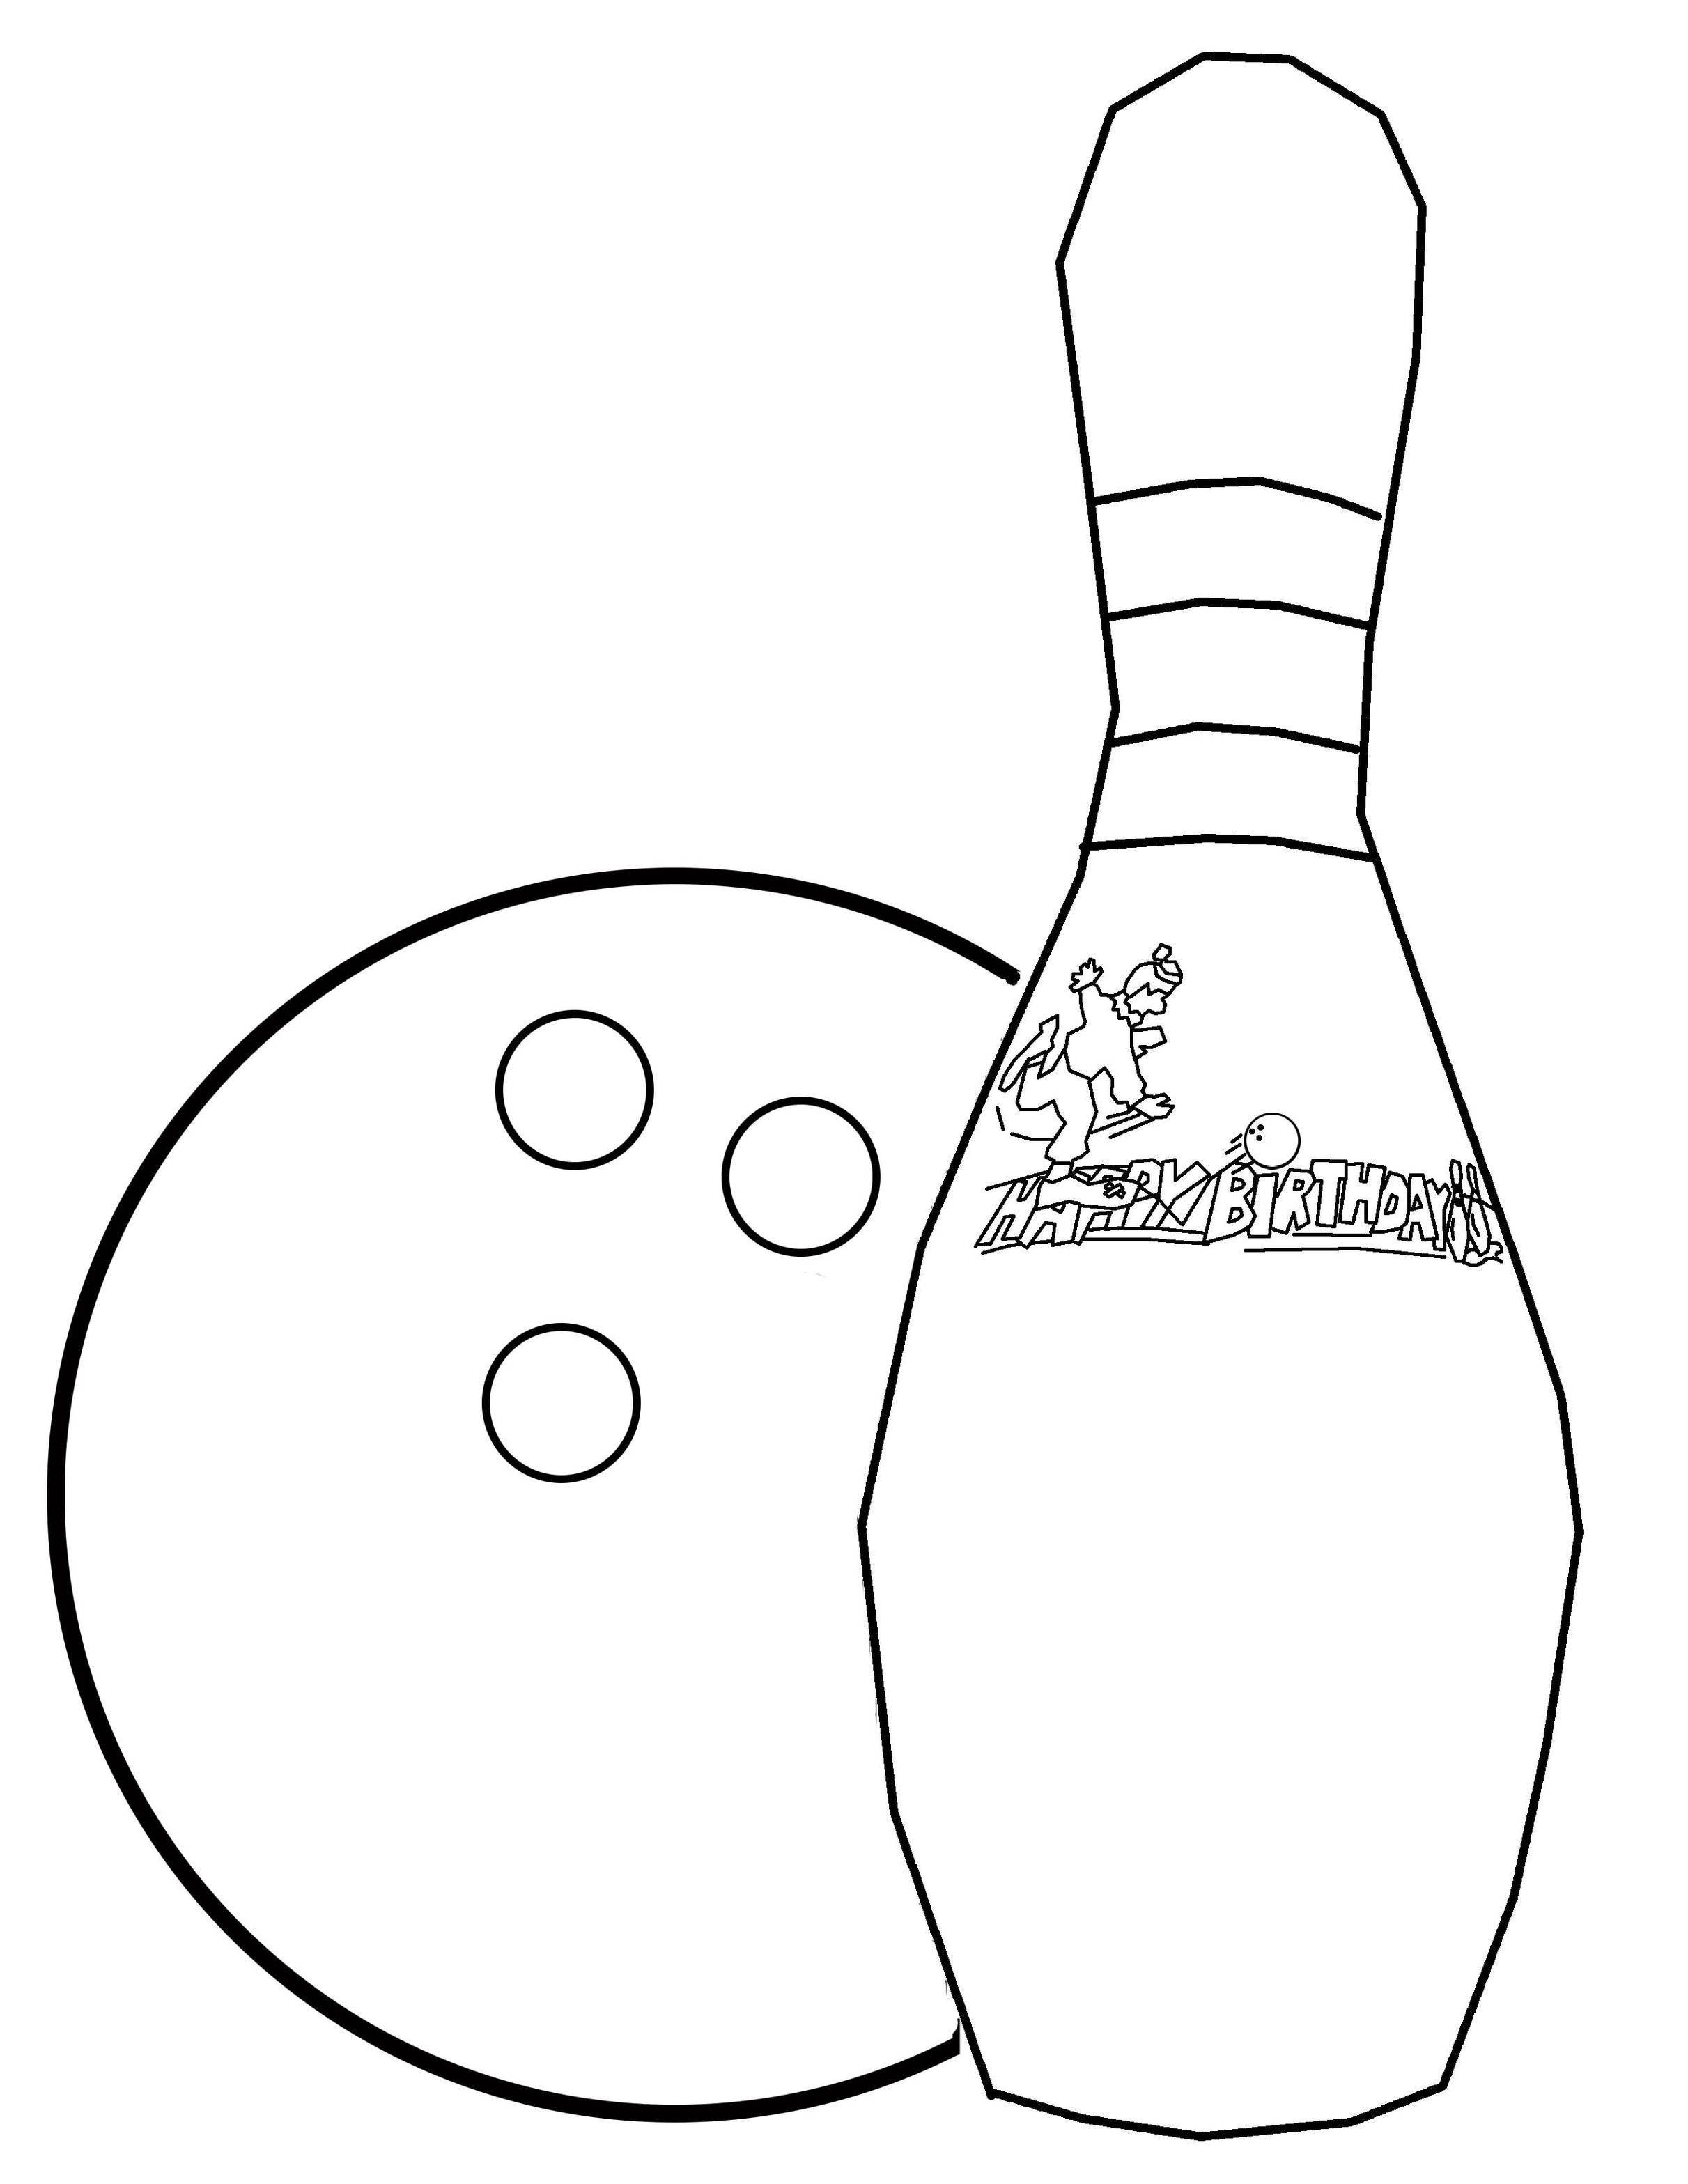 Bowling Pin Outline - ClipArt Best